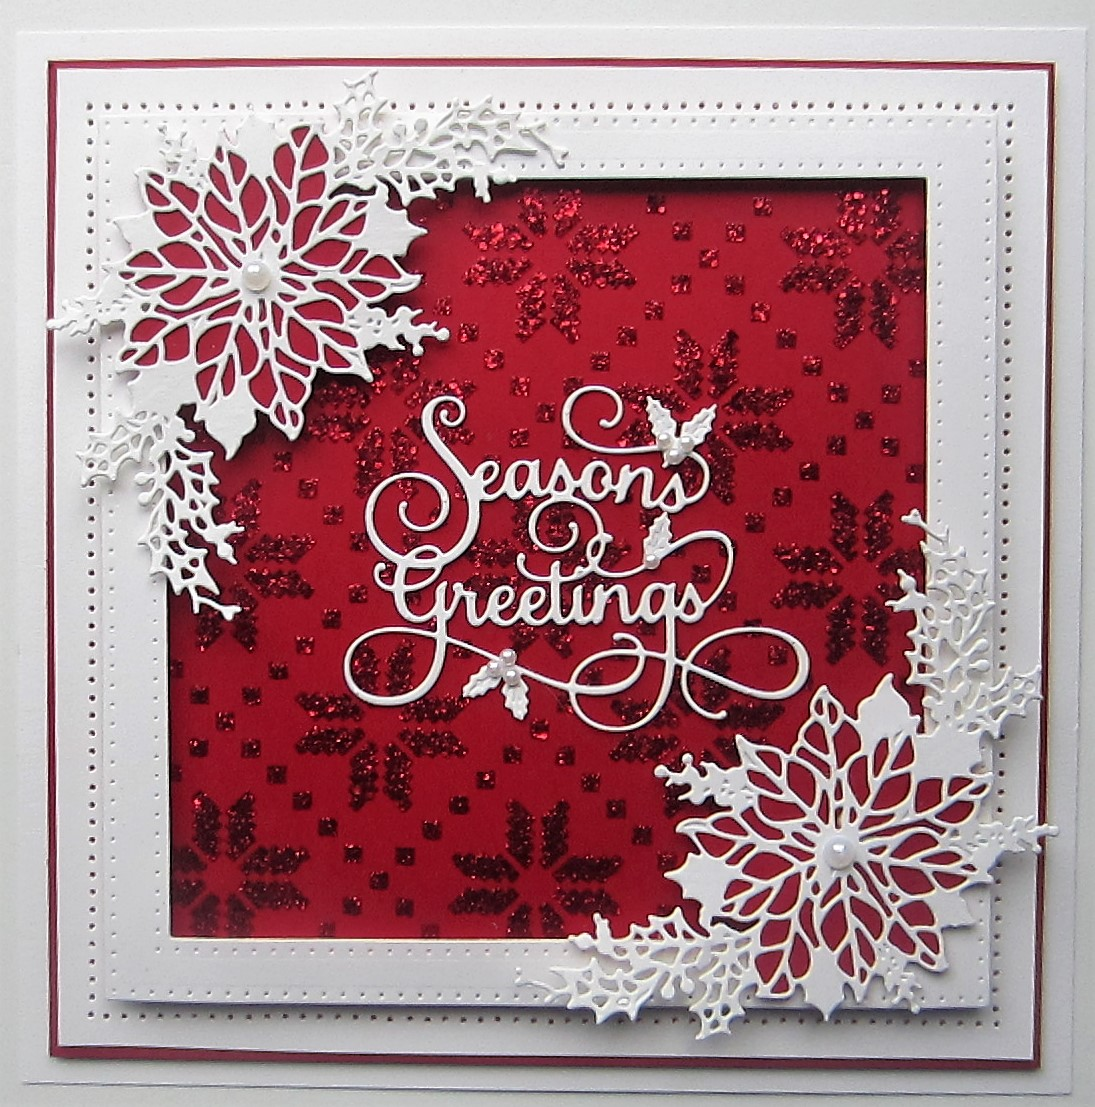 particraft participate in craft season's greetings